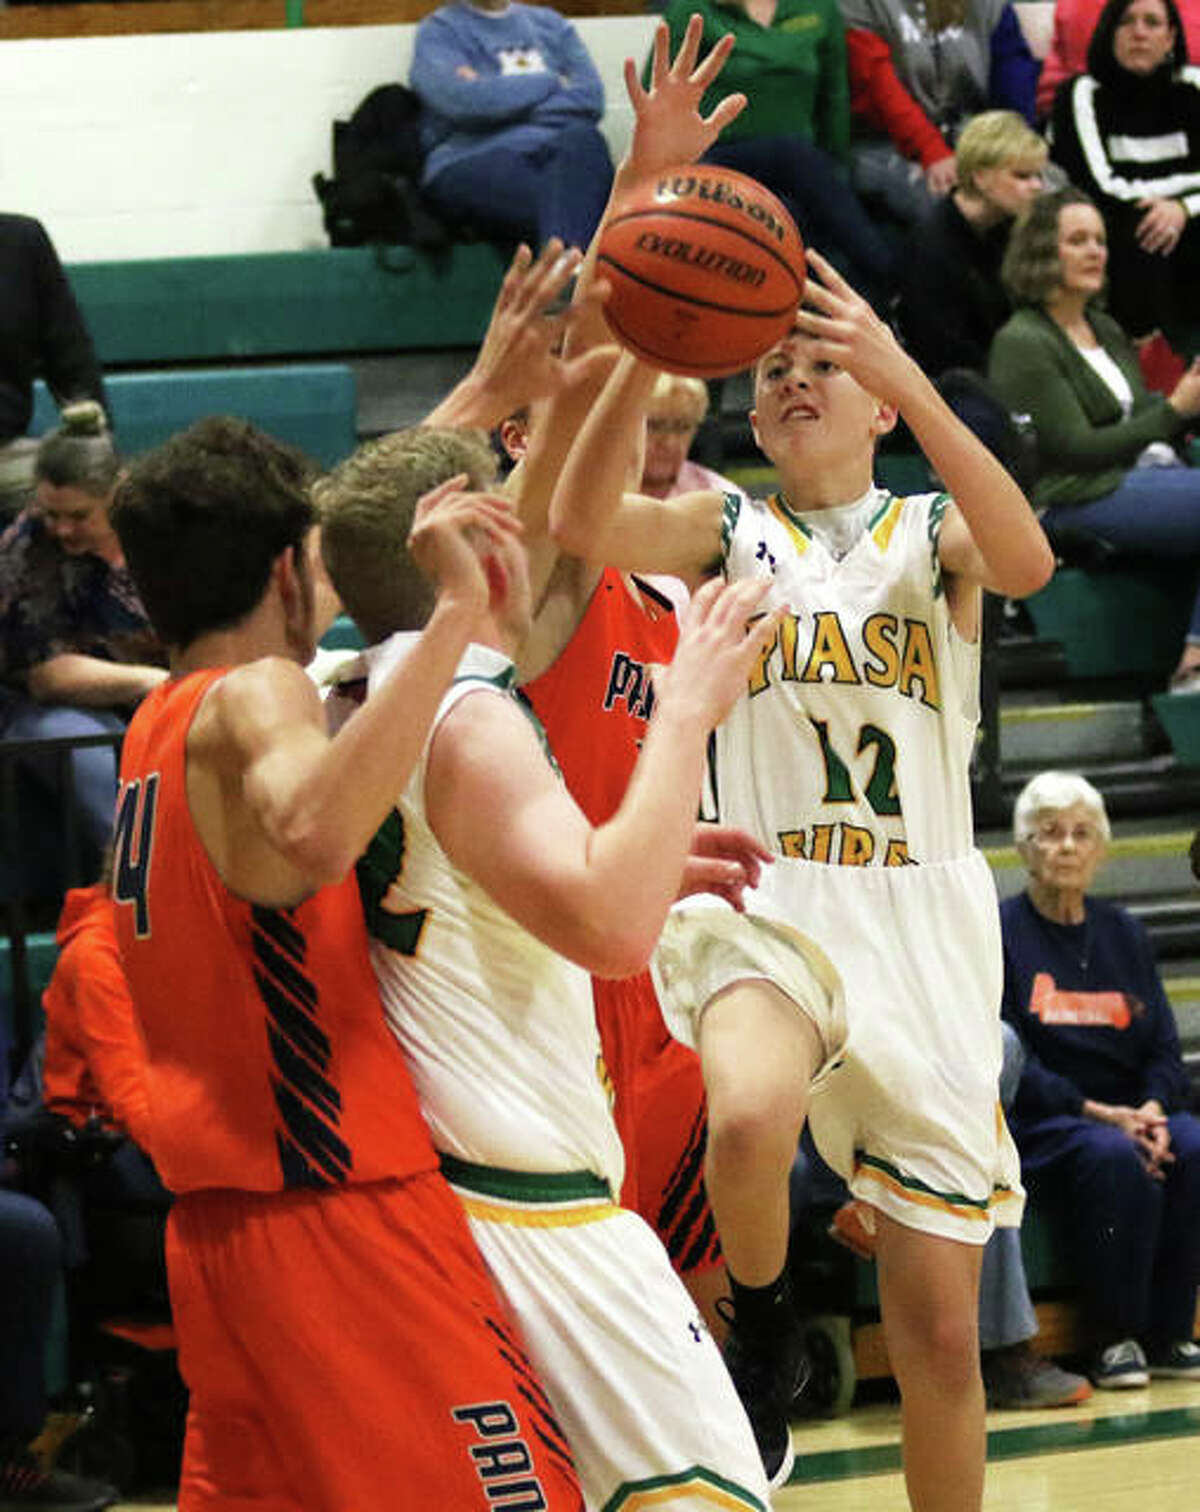 Southwestern's Keegan Rowell (right) puts up a shot in traffic in a SCC game vs. Pana on Jan. 10 in Piasa. On Tuesday night at the Macoupin County Tourney in Staunton, Rowell had five 3-pointers and 19 points to lead the Birds to an overtime victory over Gillespie.